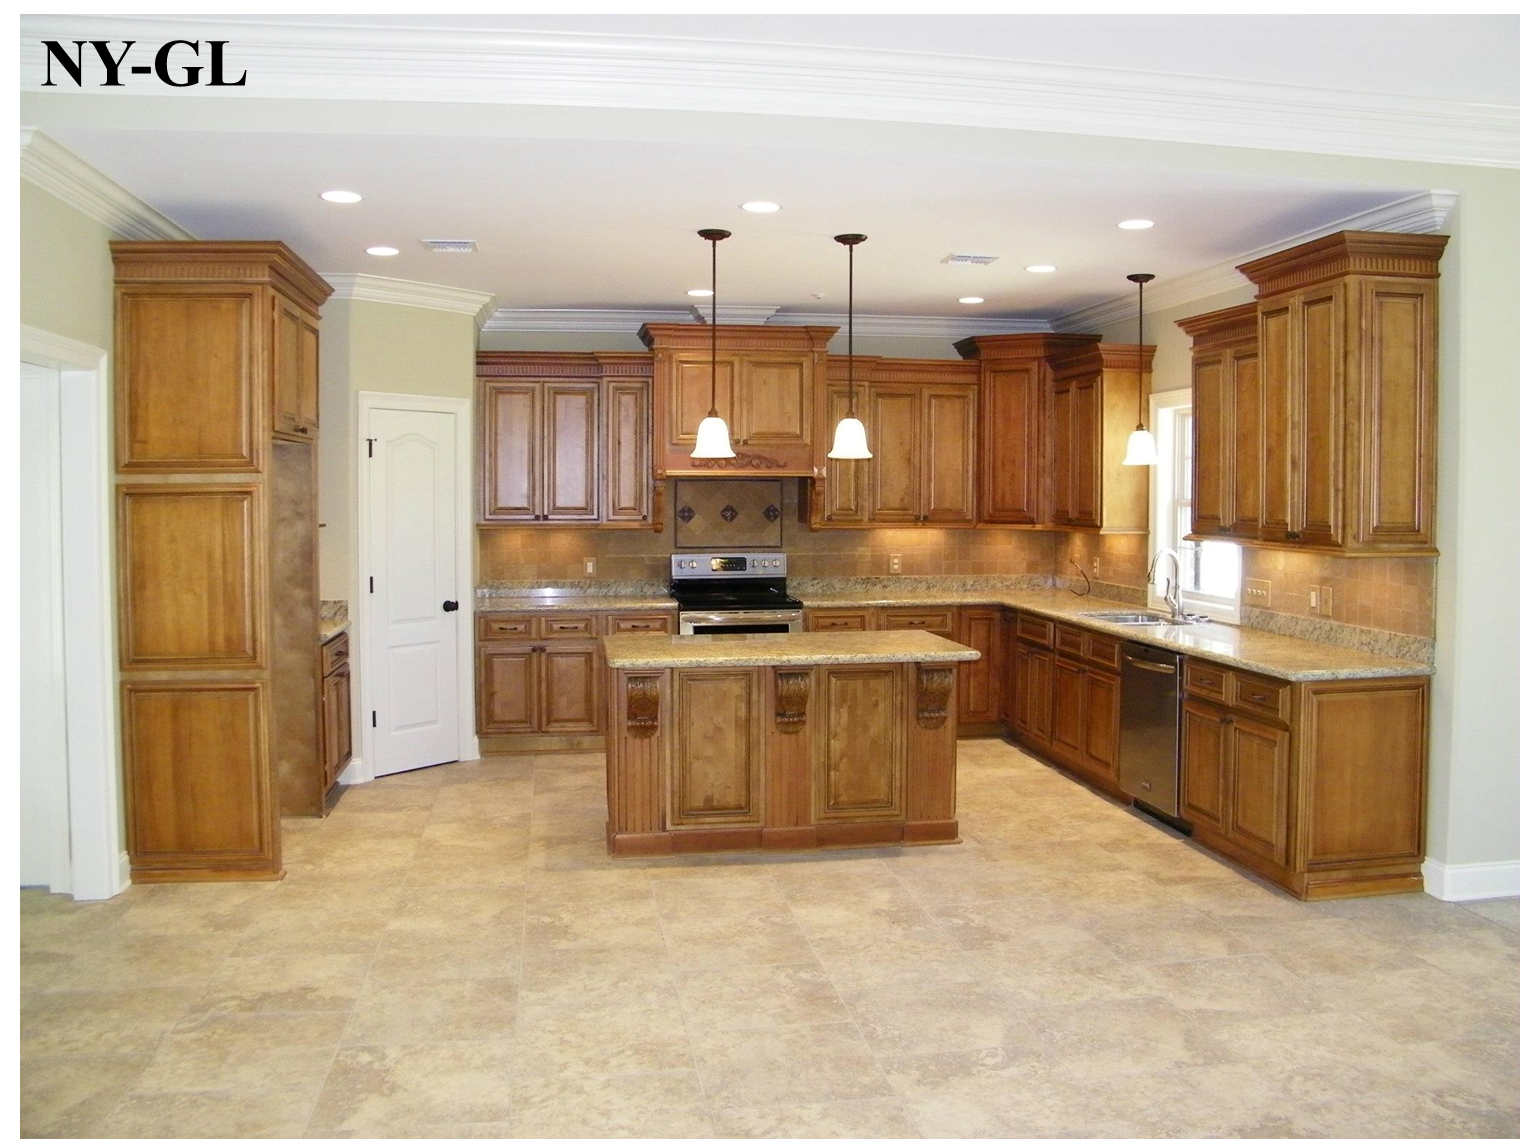 kitchen cabinets new york kitchen cabinets new york glaze ny gl gallery rta 20856